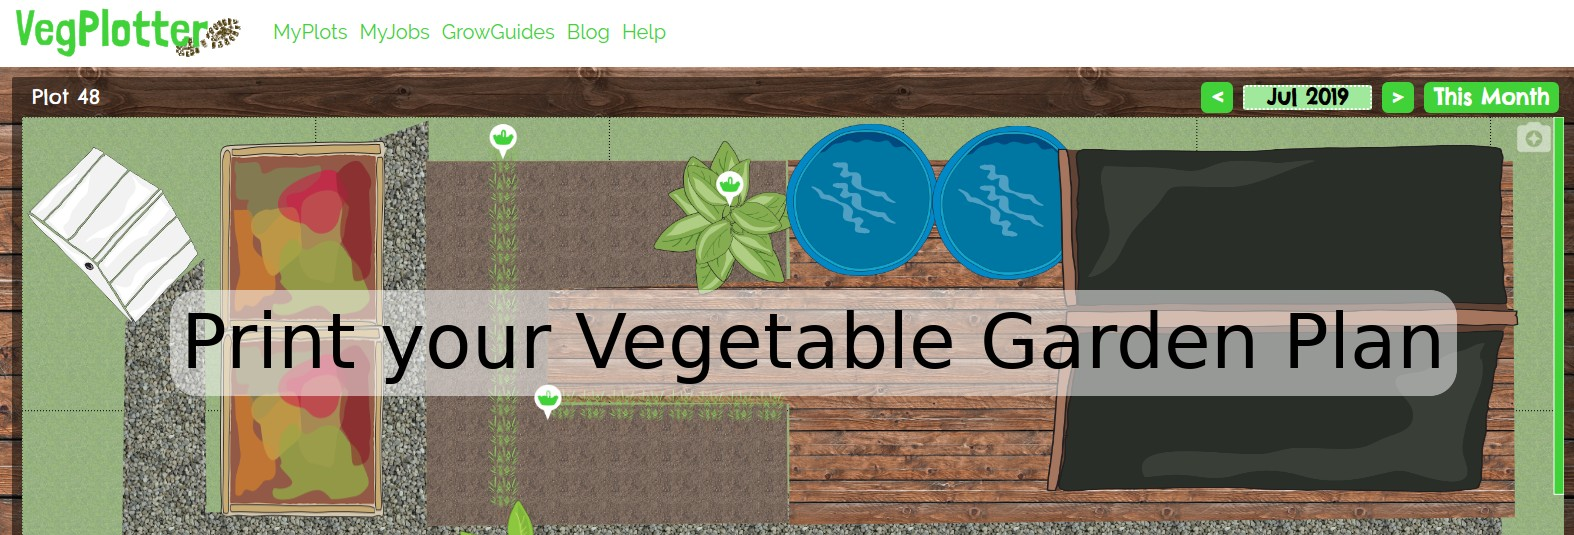 This how to guide talks through how to print your VegPlotter vegetable garden plan.